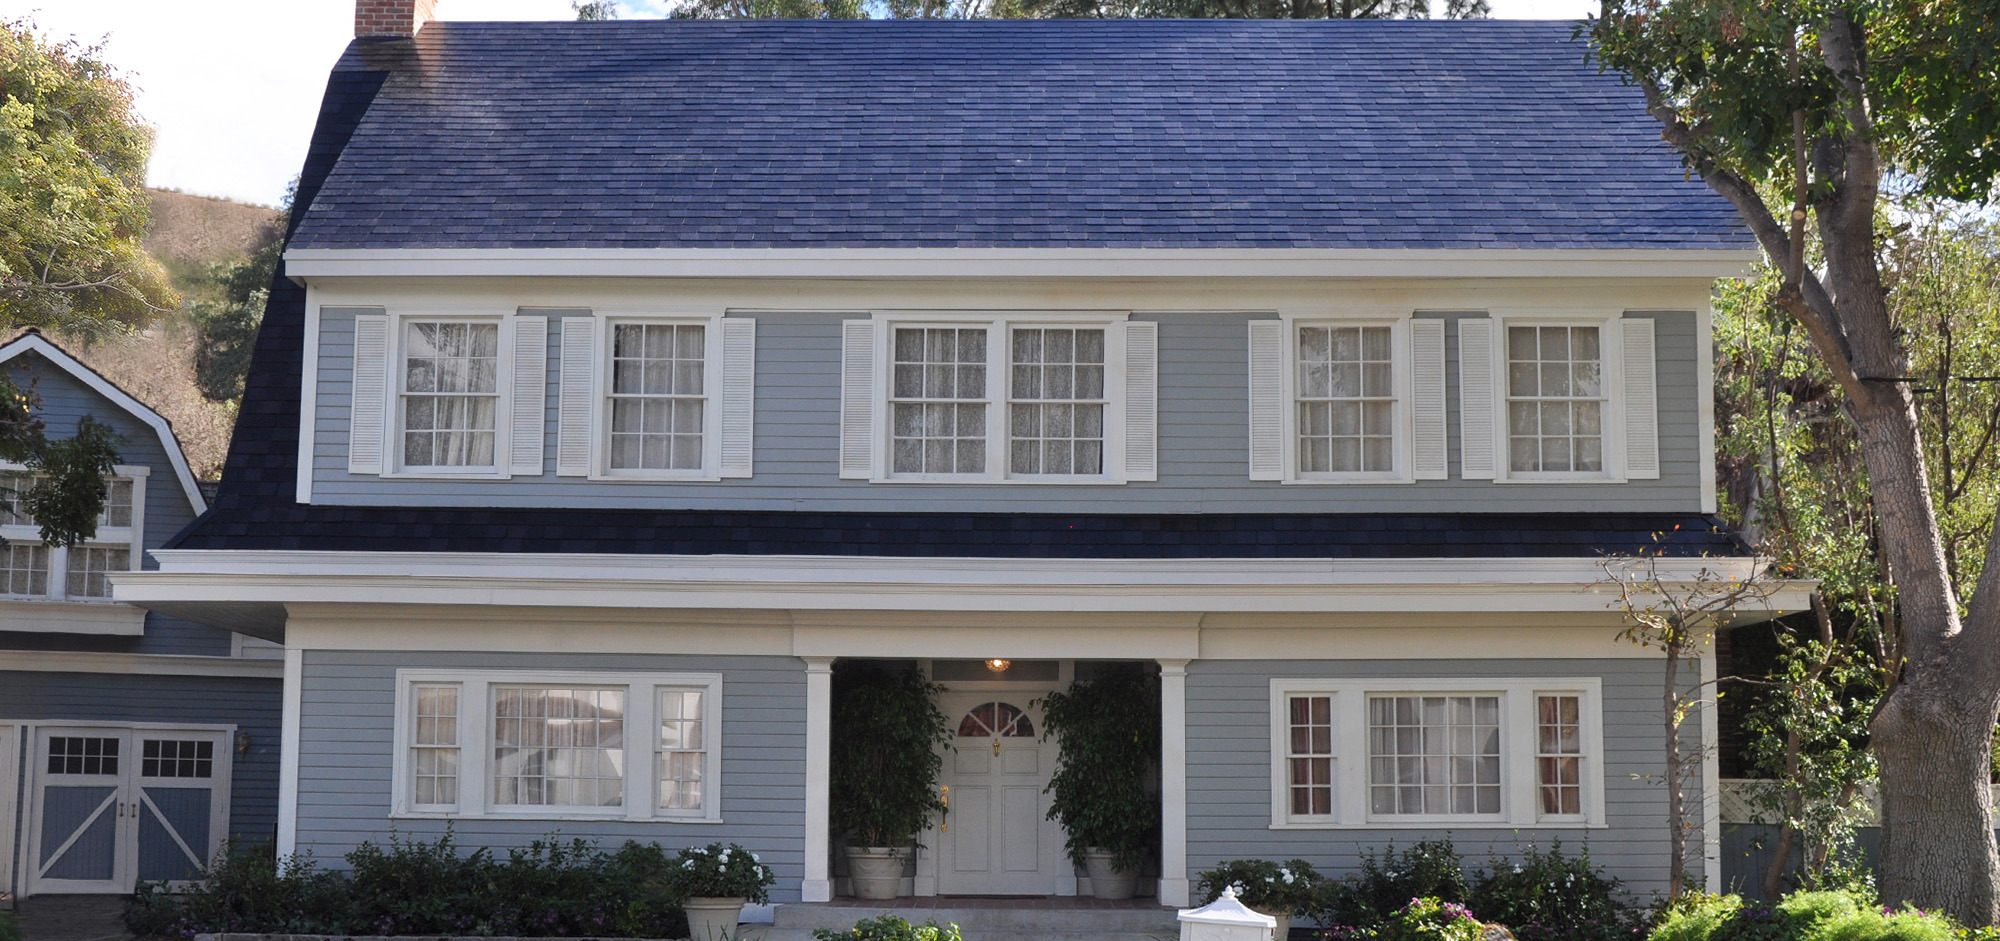 Tesla Inc. plans to start taking orders in April for its solar roof, shown on a home on a Hollywood set during a product unveiling last October. (Photo credit: Tesla Inc.)